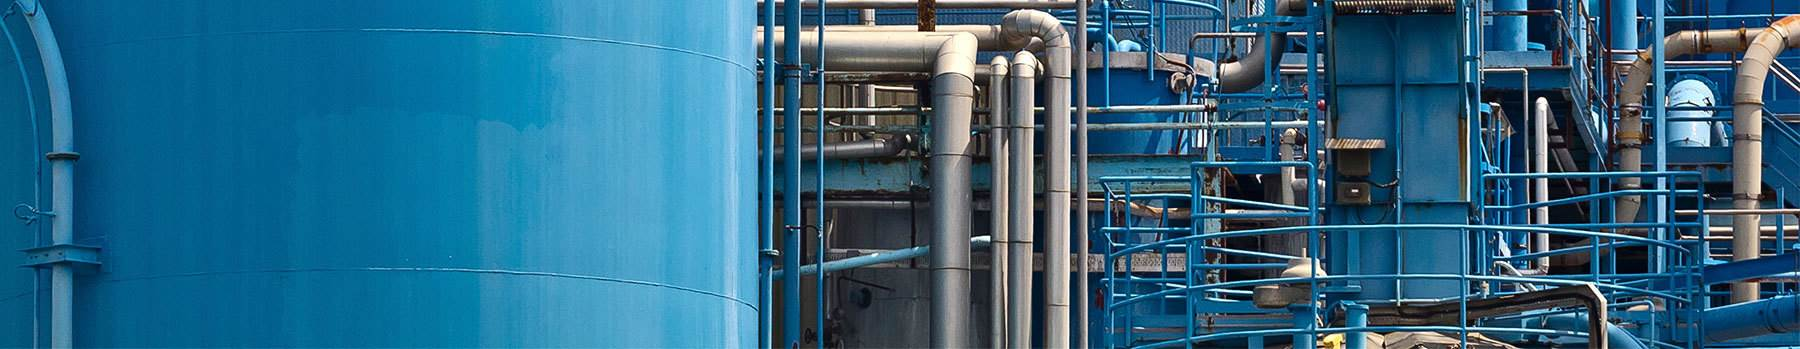 AutoPIPE  -Piping Design and Analysis Software